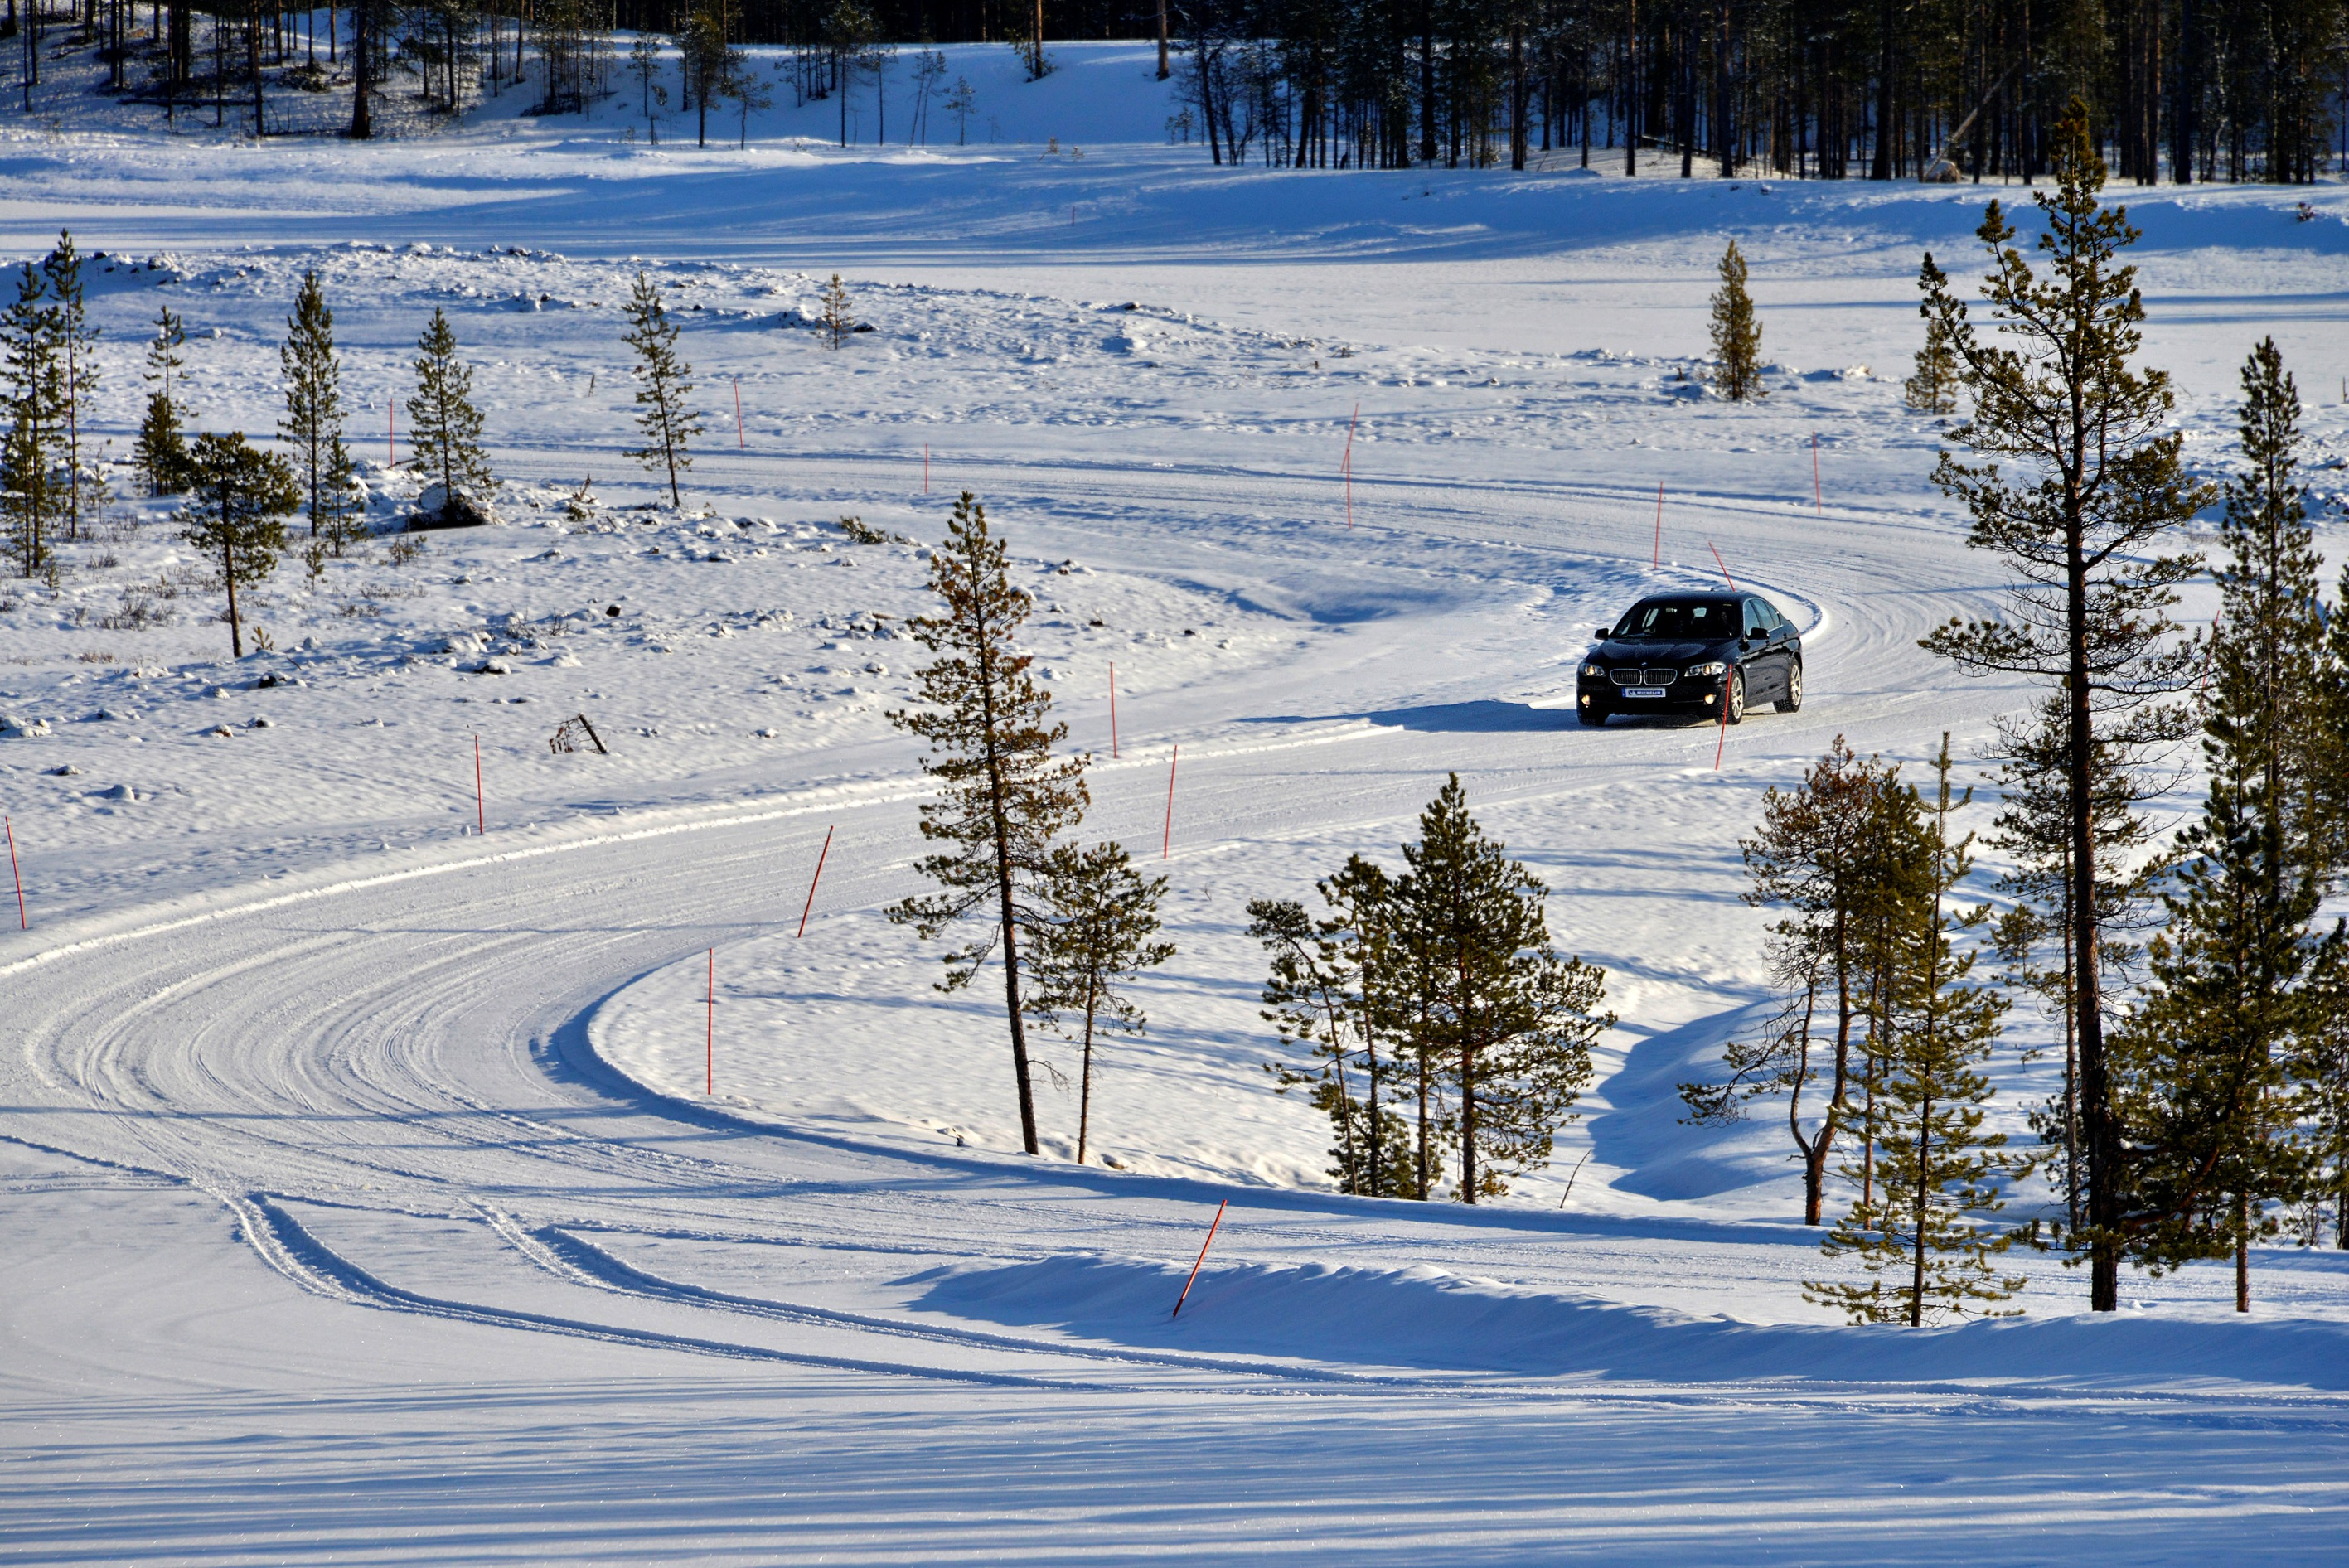 Ivalo winter tyre testing track north of the Arctic circle